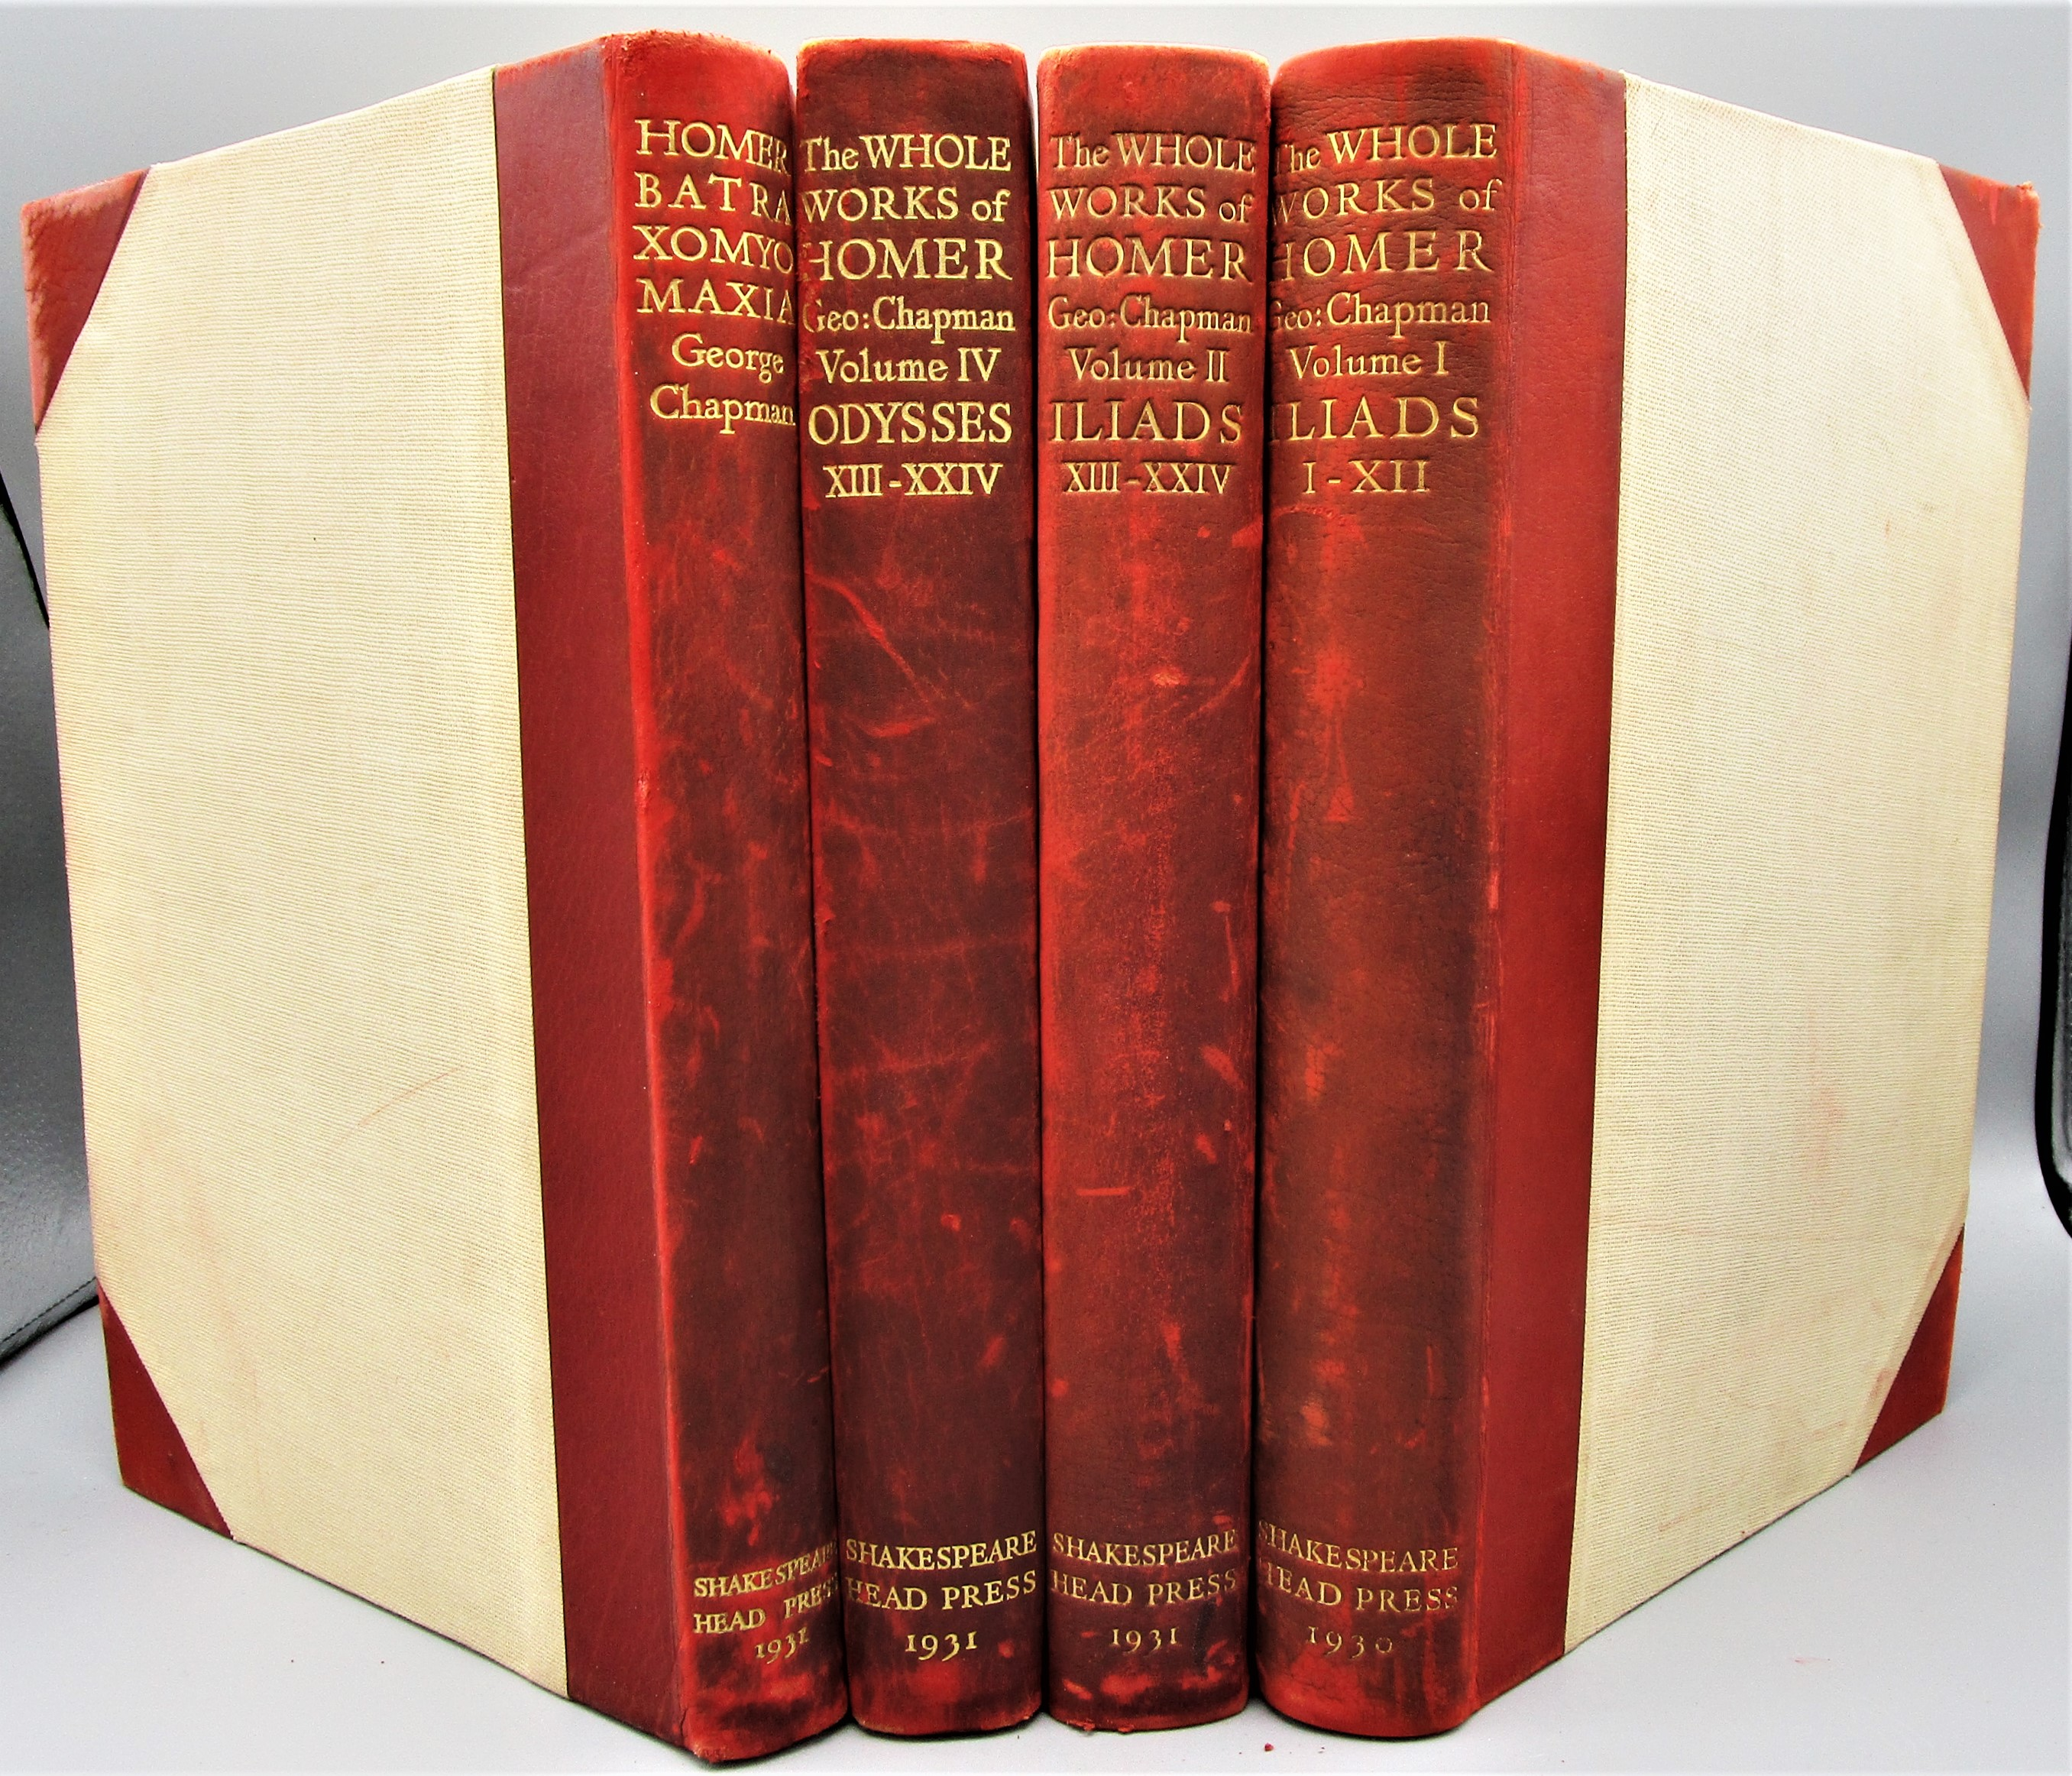 THE WHOLE WORKS OF HOMER - 1930 [4 Vols, Ltd Ed]